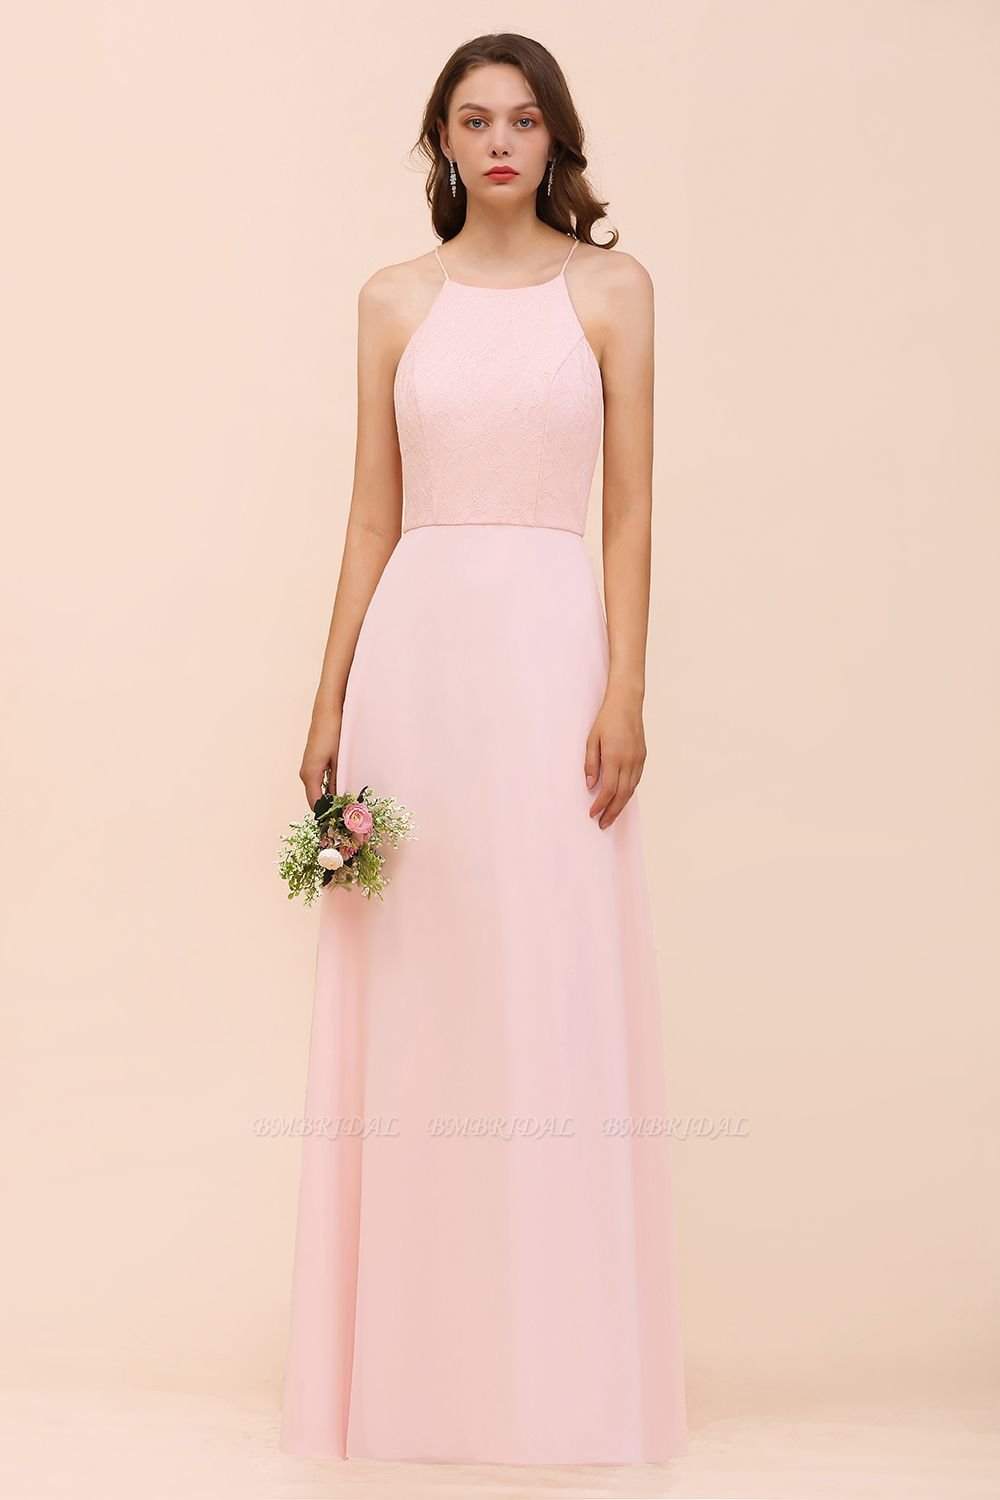 BMbridal Elegant Lace Spaghetti Straps Affordable Long Bridesmaid Dress